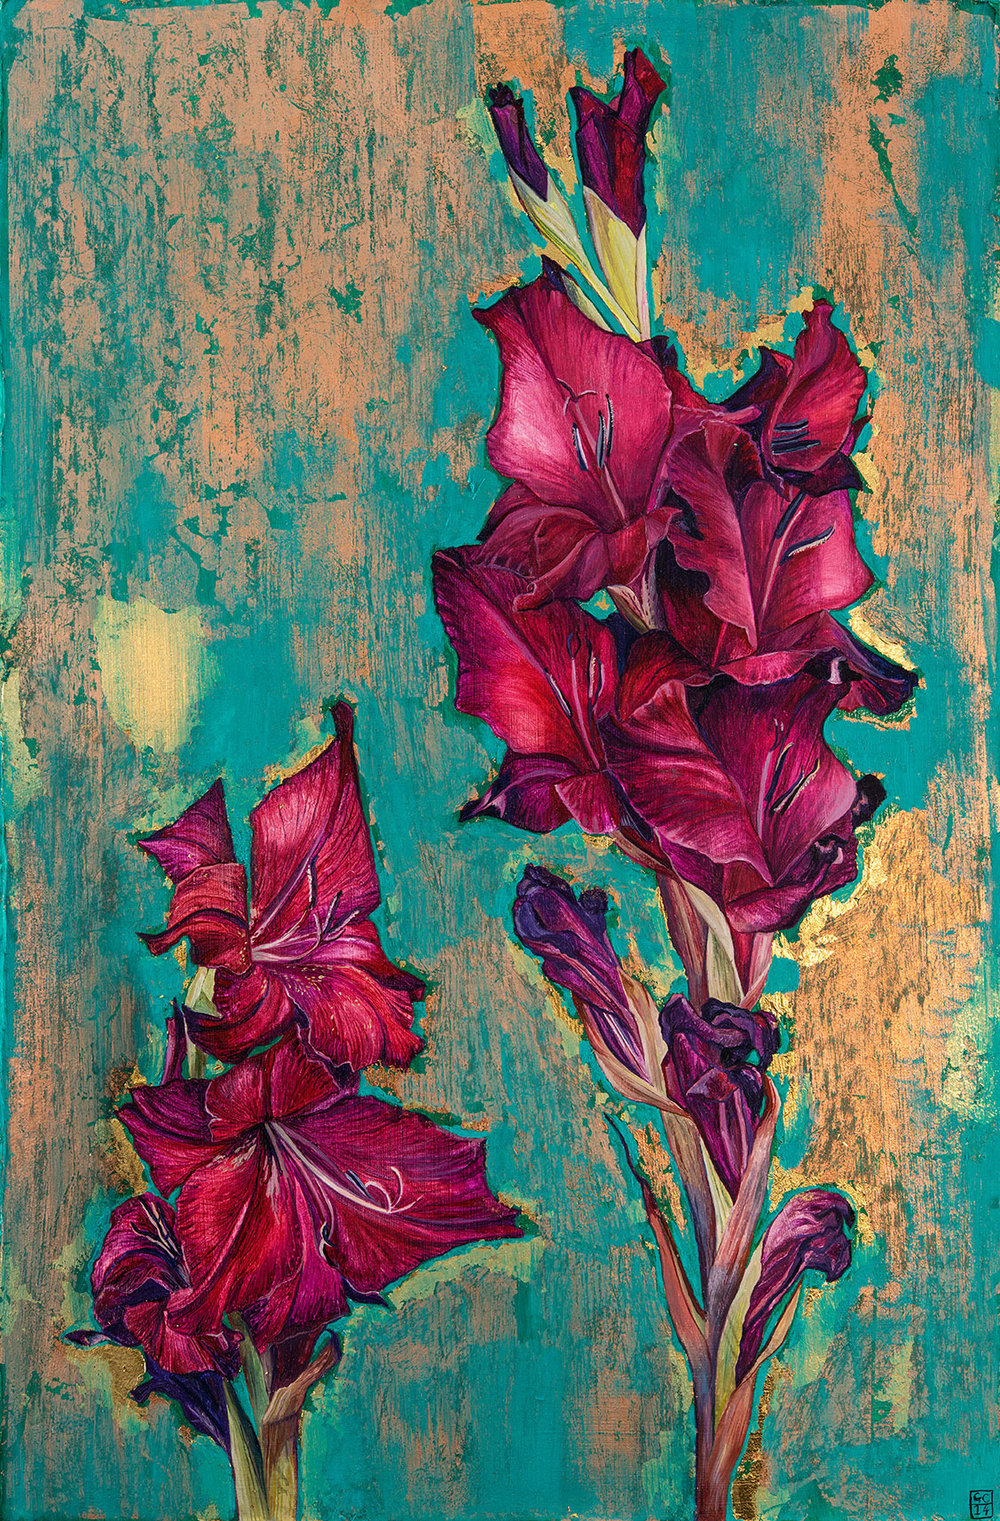 'Gladioli', Oil and Metal Leaf on Card, 37.5cm x 25cm, 2015. SOLD